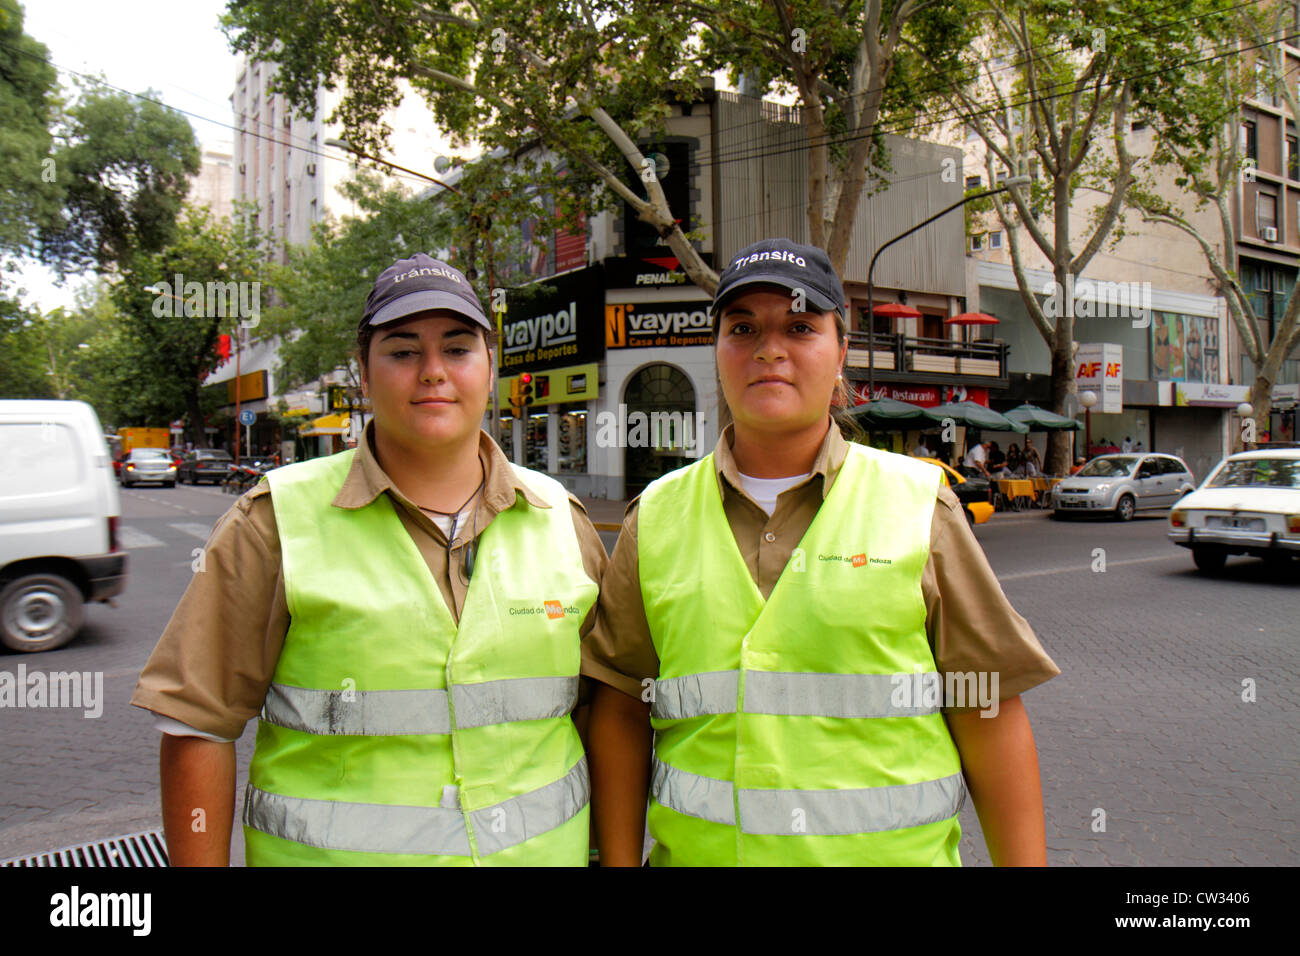 Mendoza Argentina Avenida San Martin Hispanic woman women public safety traffic agent inspector job uniform reflective - Stock Image